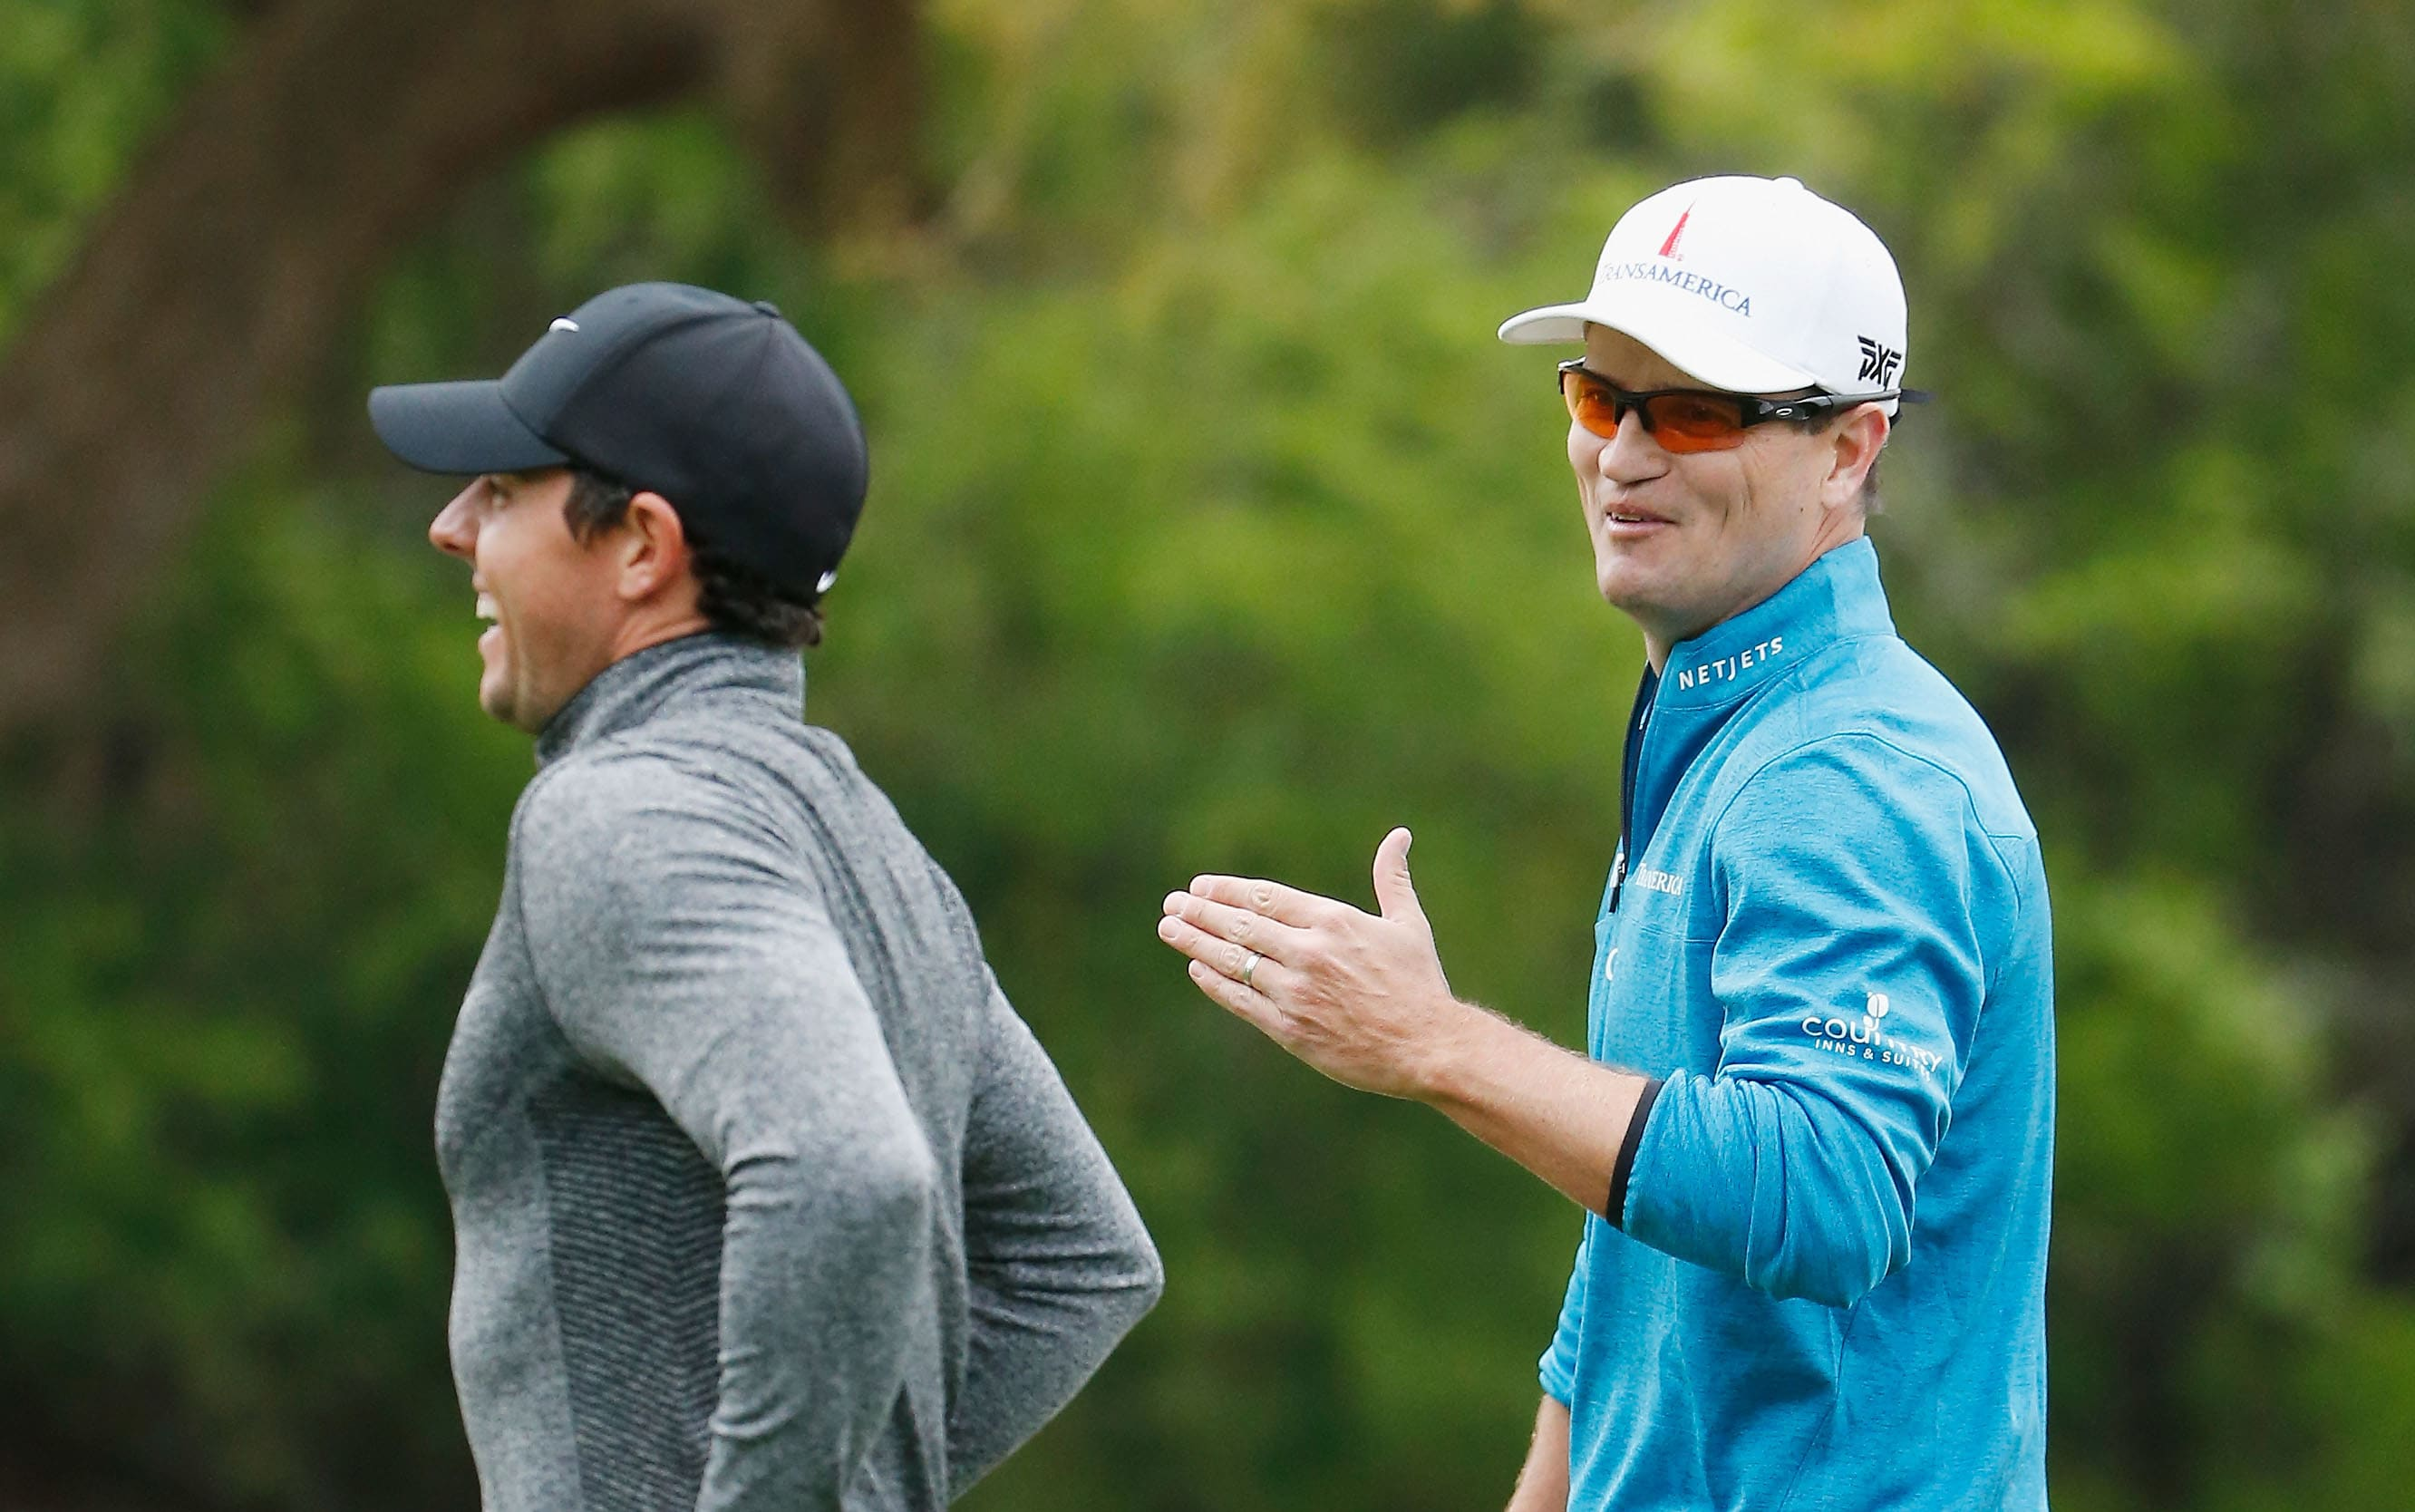 'Seriously, you won't believe what Bubba did'